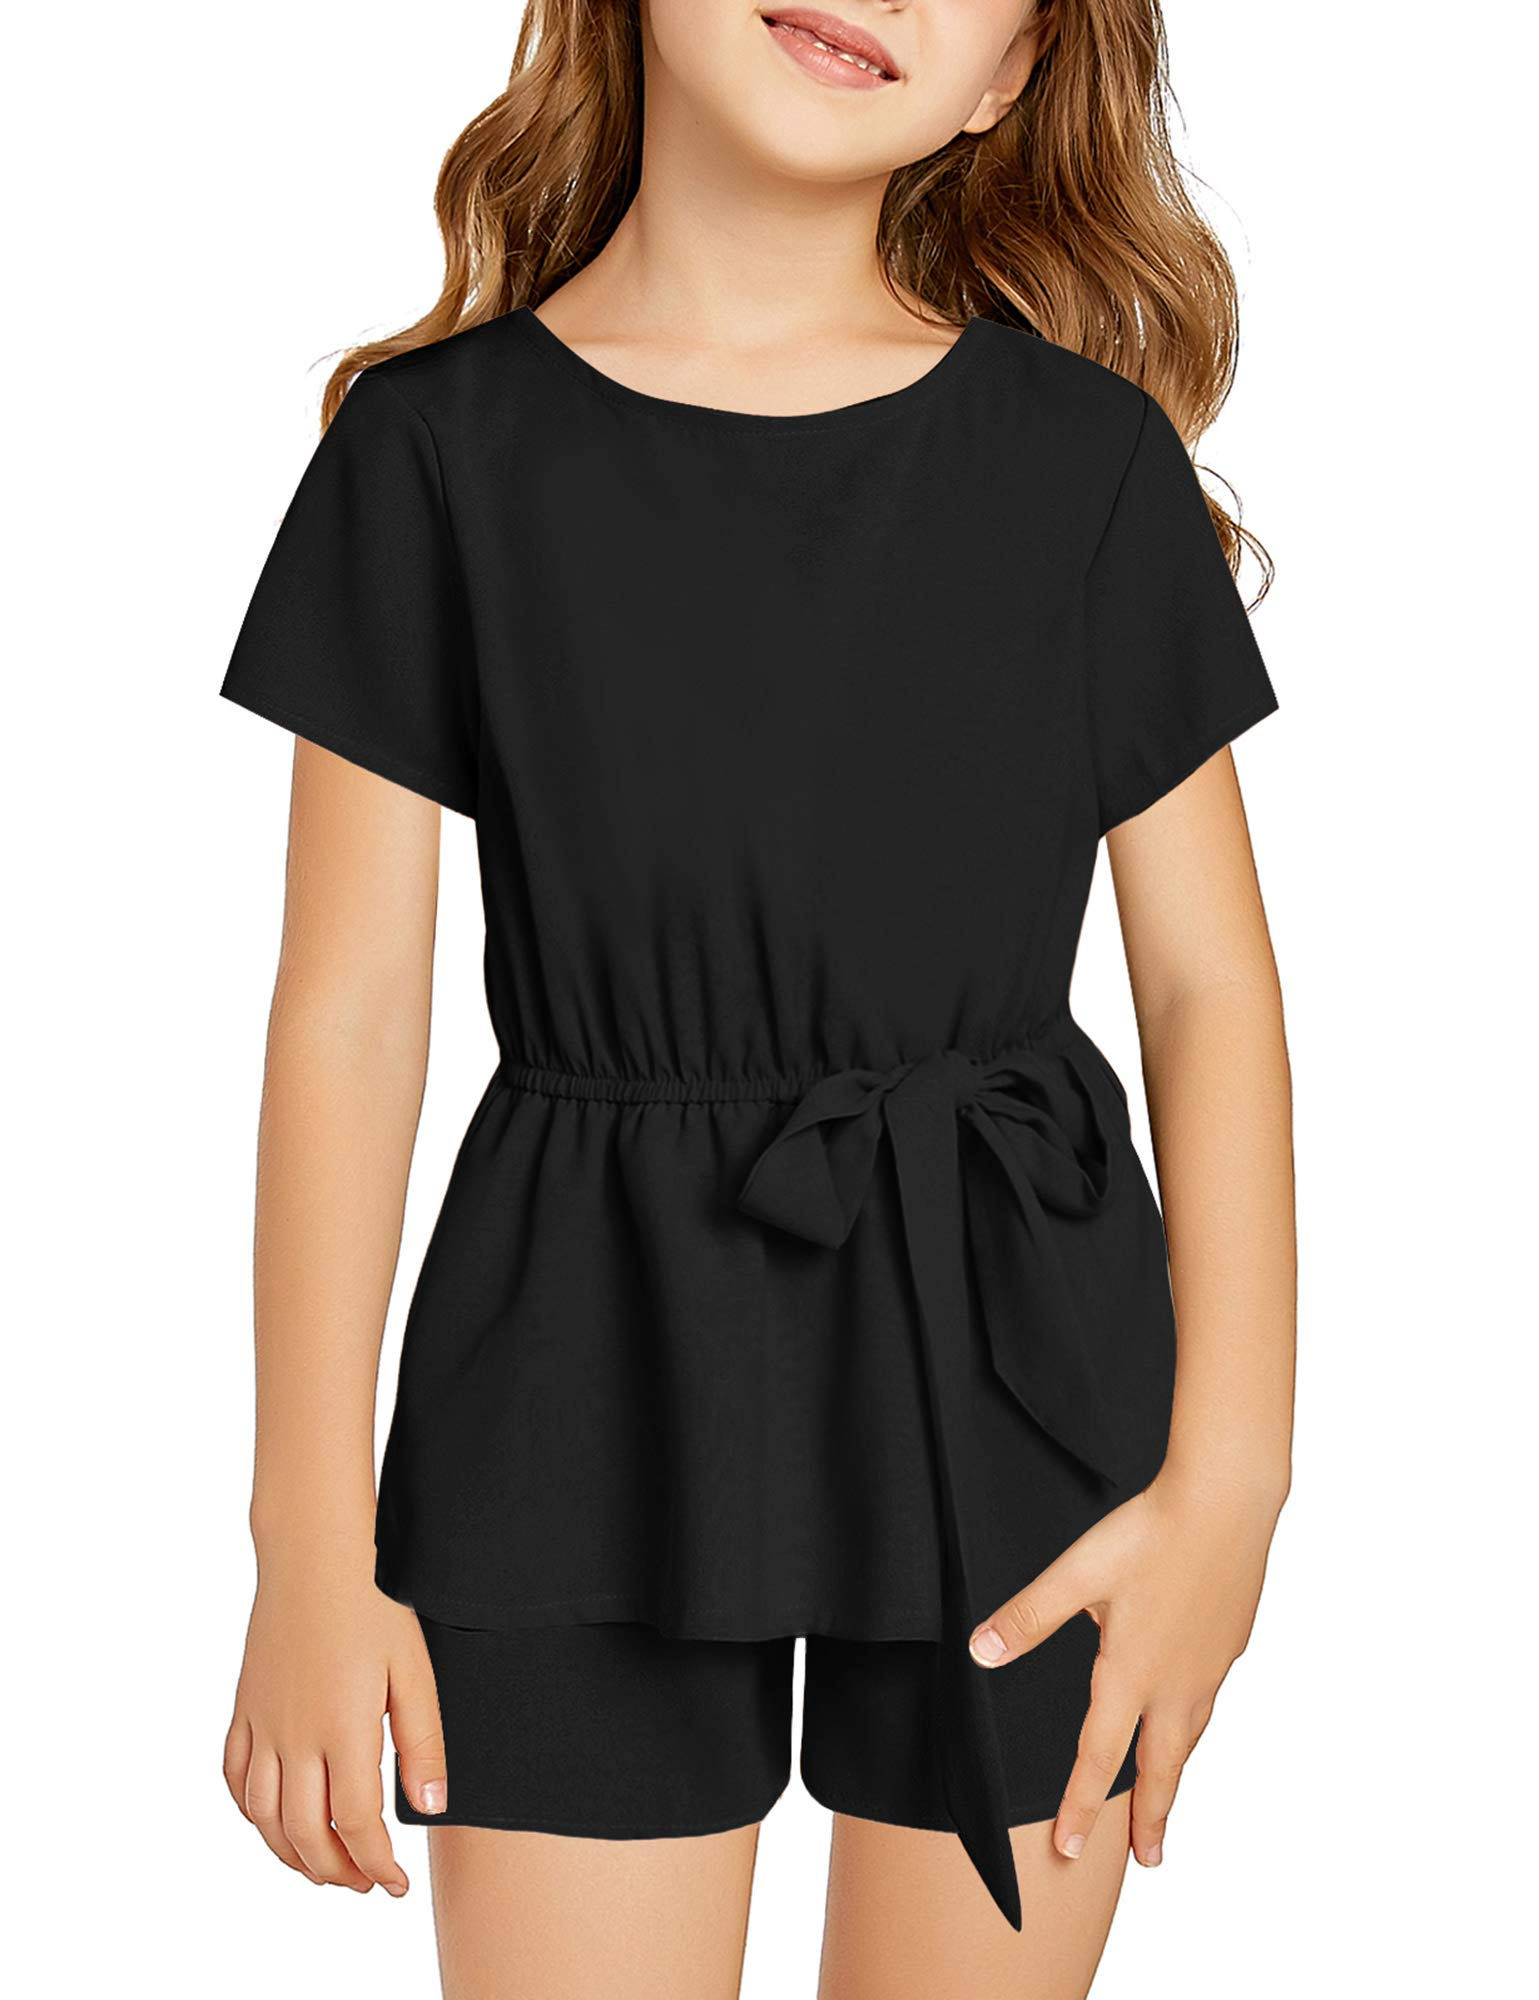 Utyful Girl's Casual Round Neck Short Sleeve Layered One Piece Romper Jumpsuit 4-11 Years